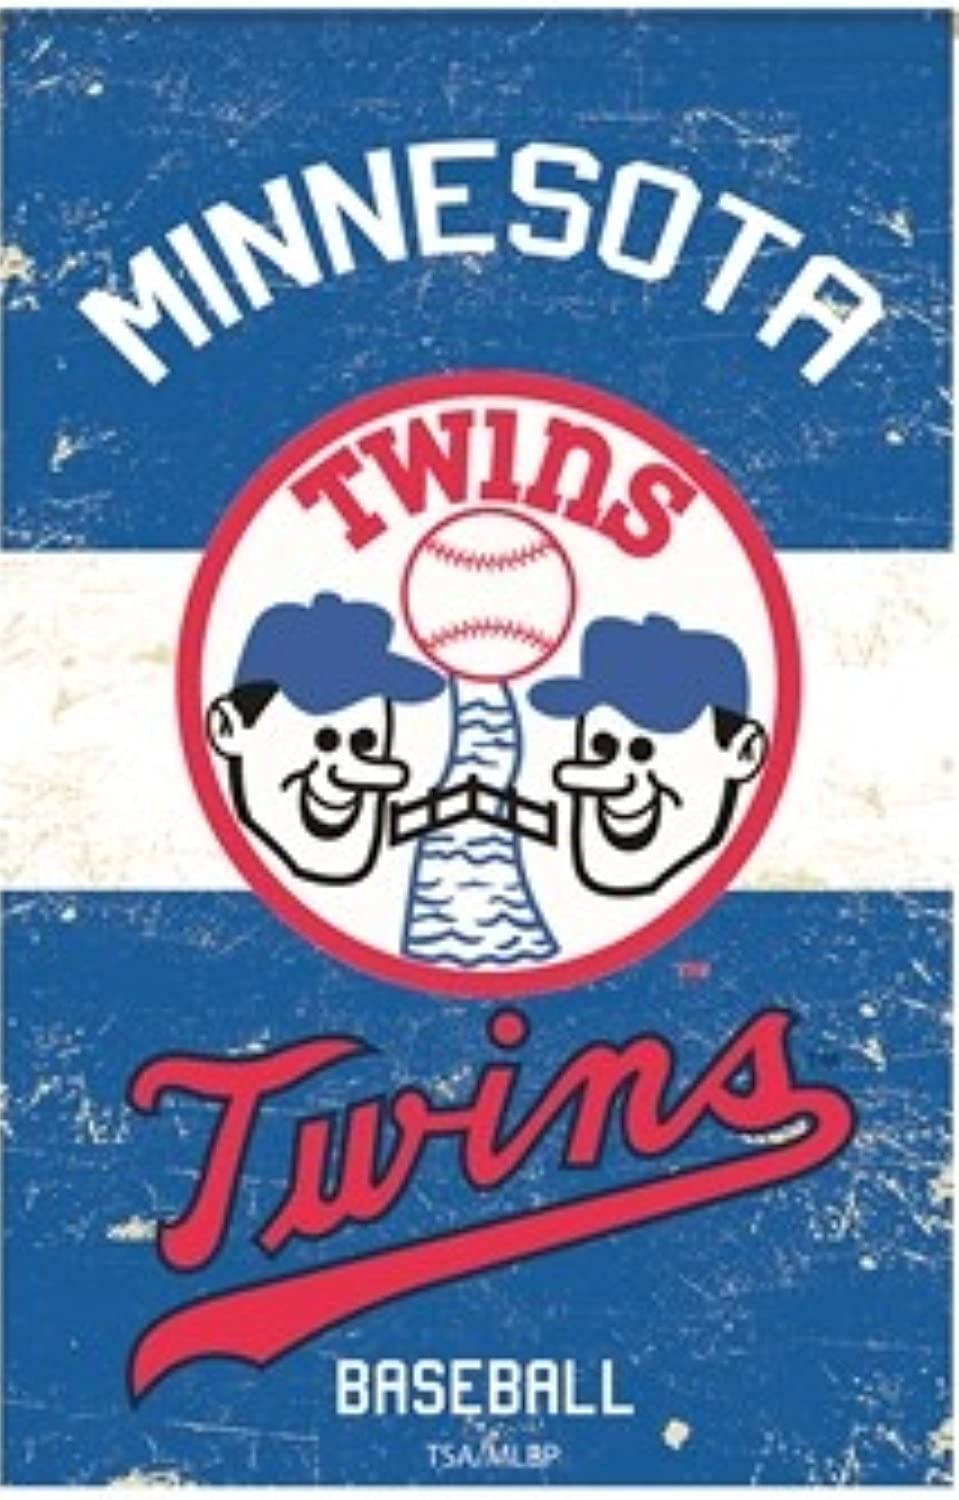 Rico Industries, Inc. Twins EG Vintage Retro Banner Premium 2-Sided 28x44 House Flag Baseball